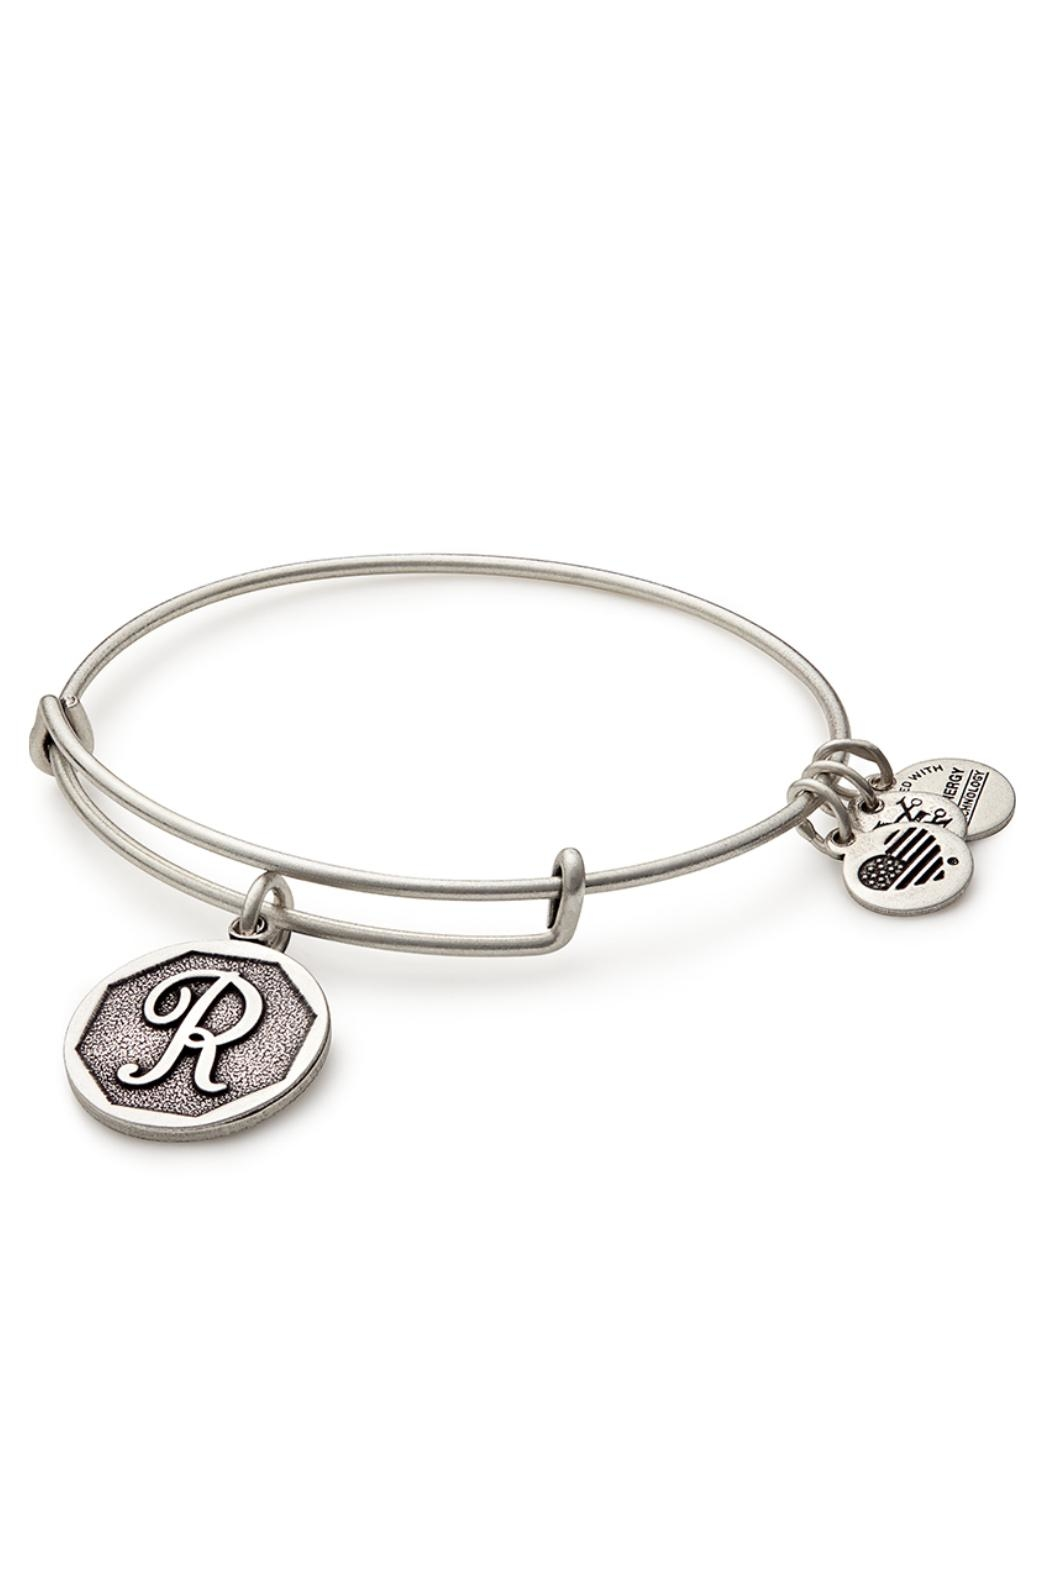 "Alex and Ani Alex And Ani Initial ""R"" Bracelet - Main Image"